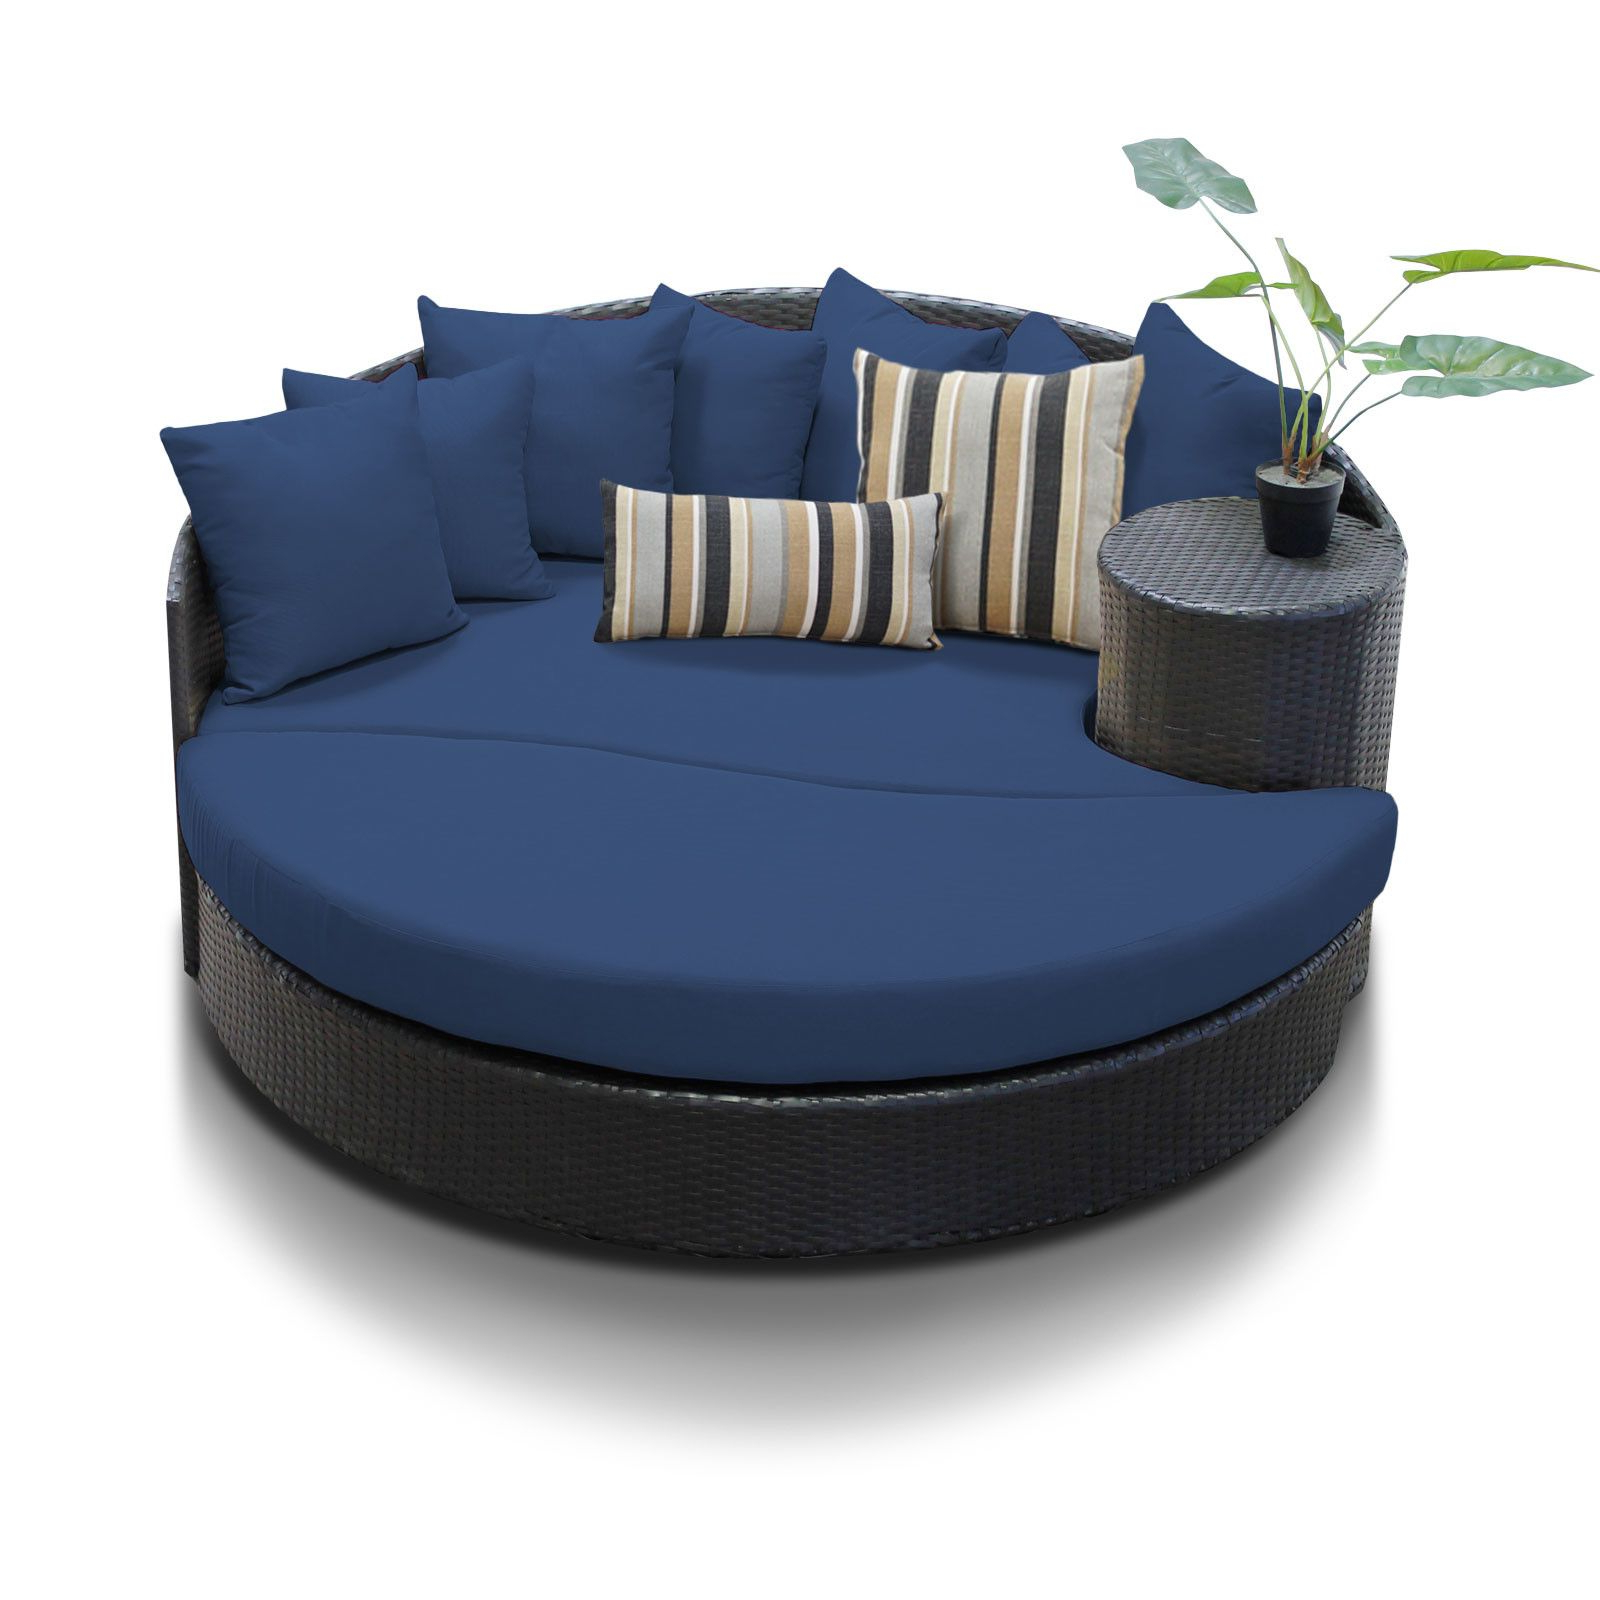 Keiran Patio Daybeds With Cushions Within Recent Newport Circular Sun Daybed With Cushions (View 10 of 20)